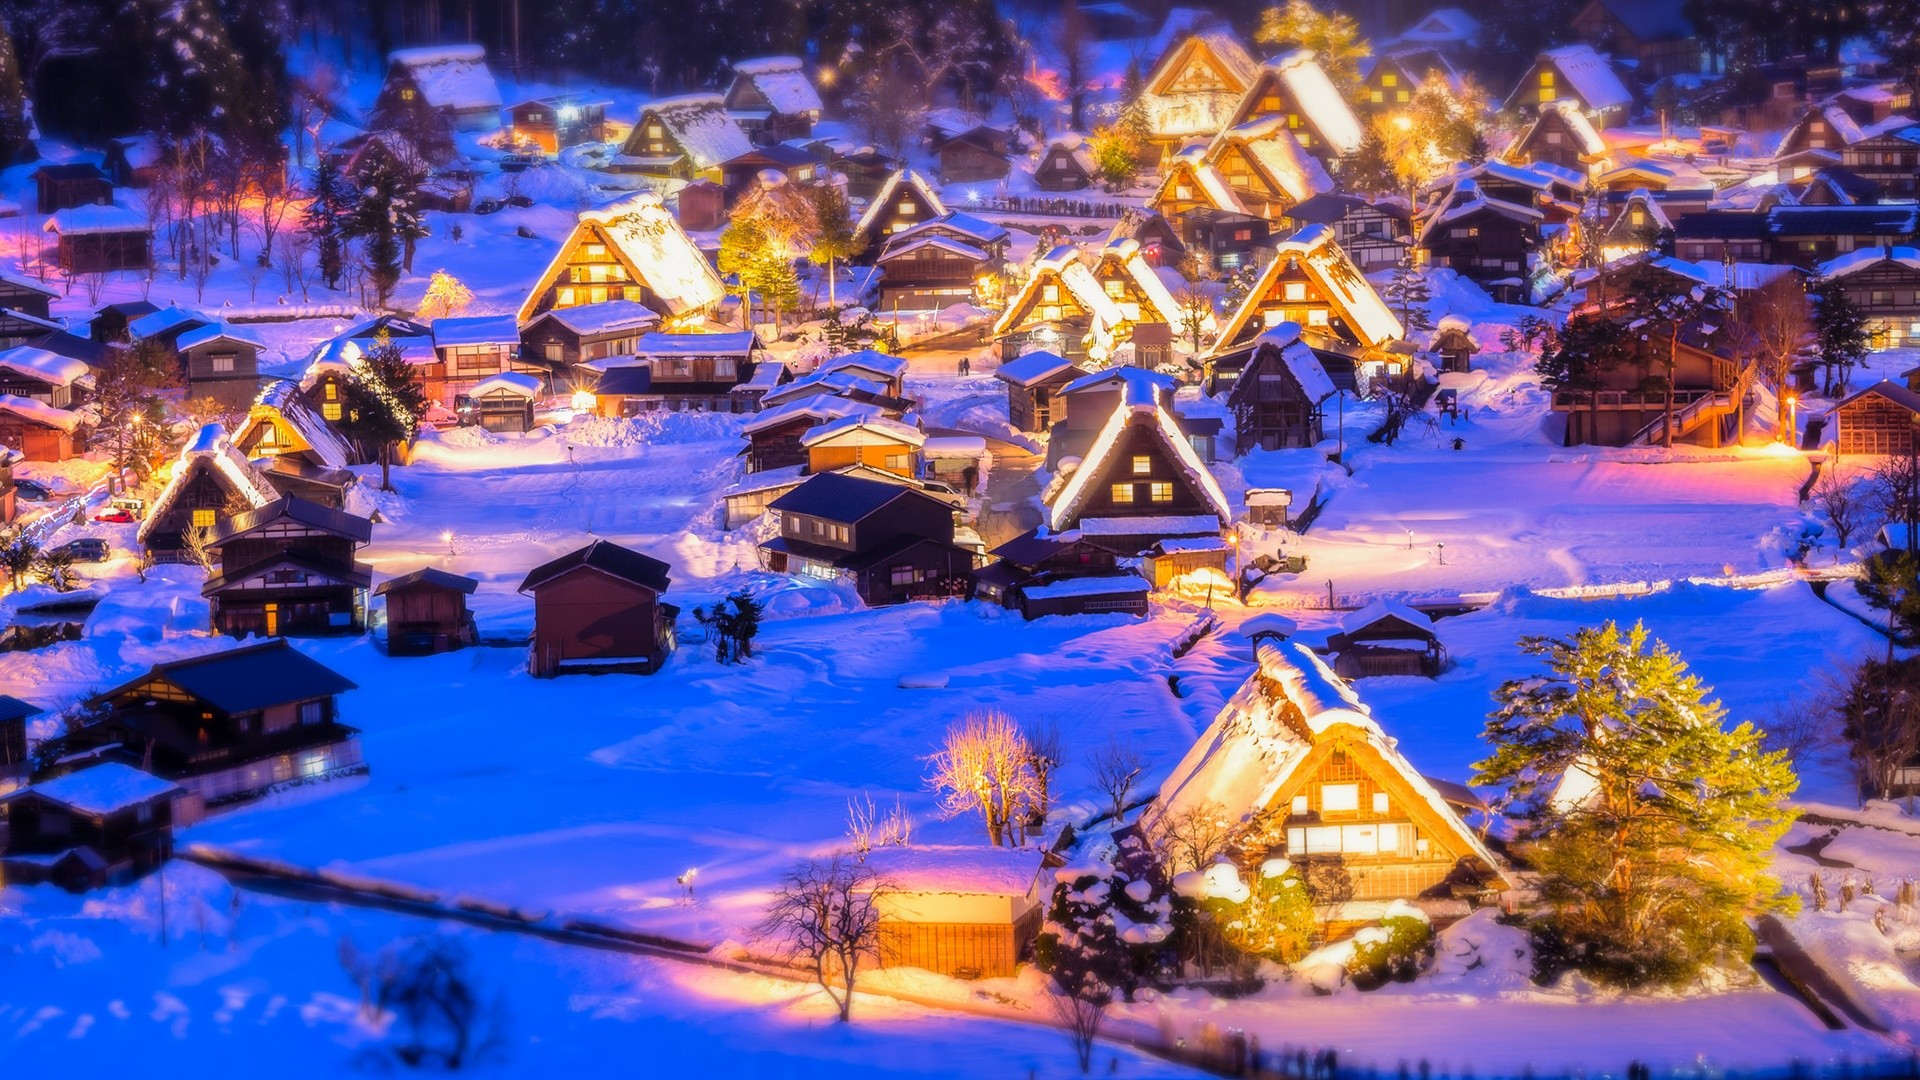 Christmas Village Backgrounds (52+ Images